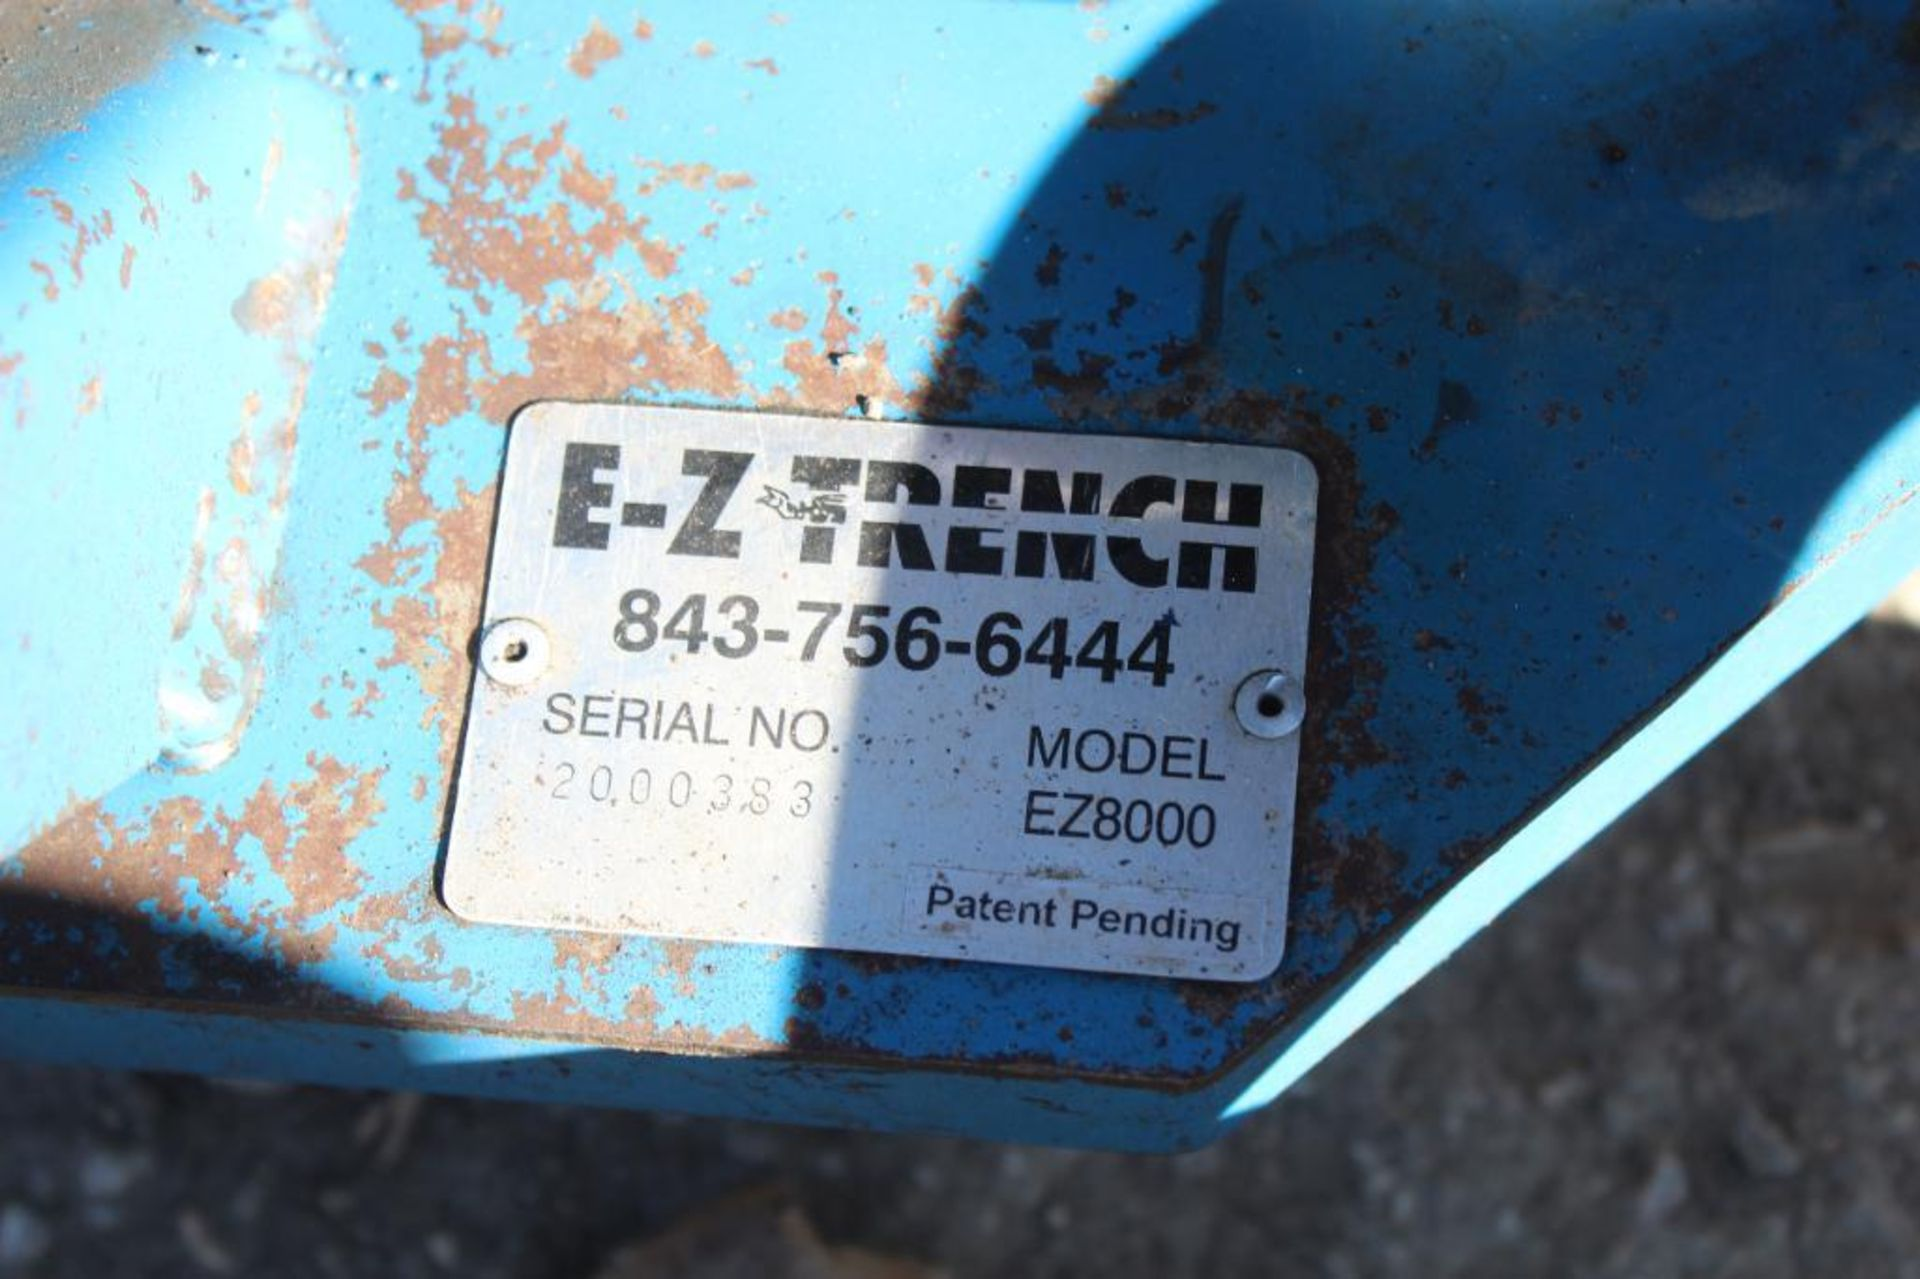 E-Z Trench EZ8000 Mini Trench with Bed Cutting Attachment, S/N 200383 - Image 4 of 4